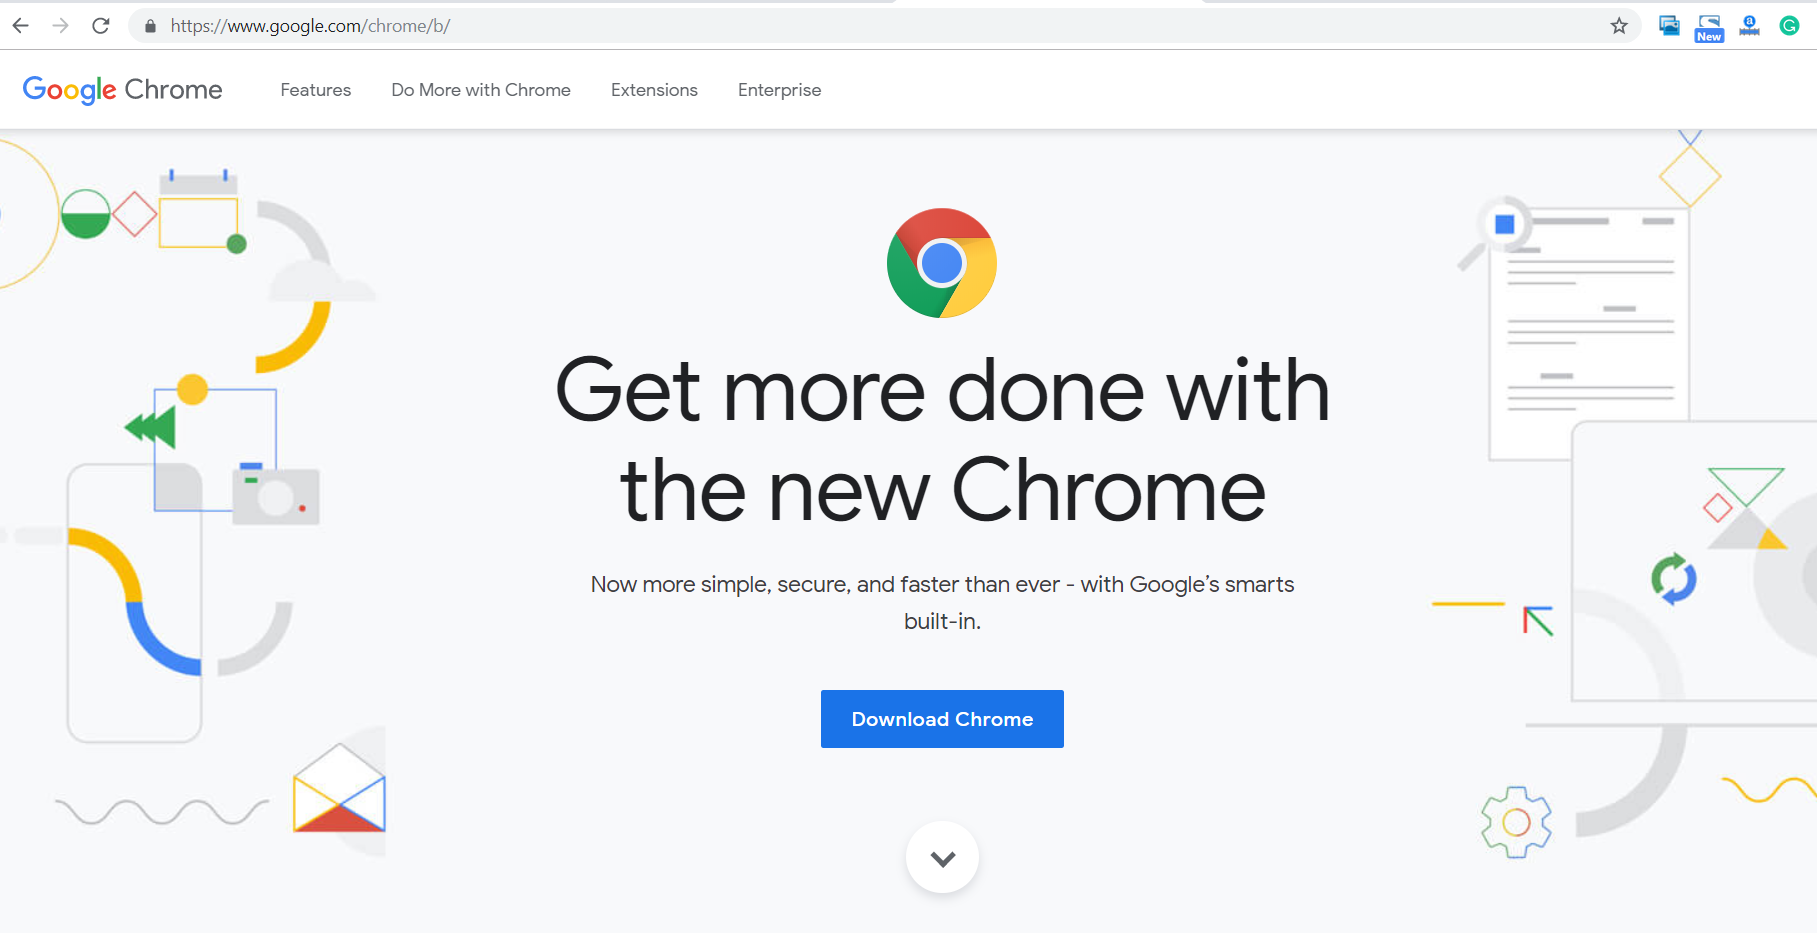 image for downloading chrome